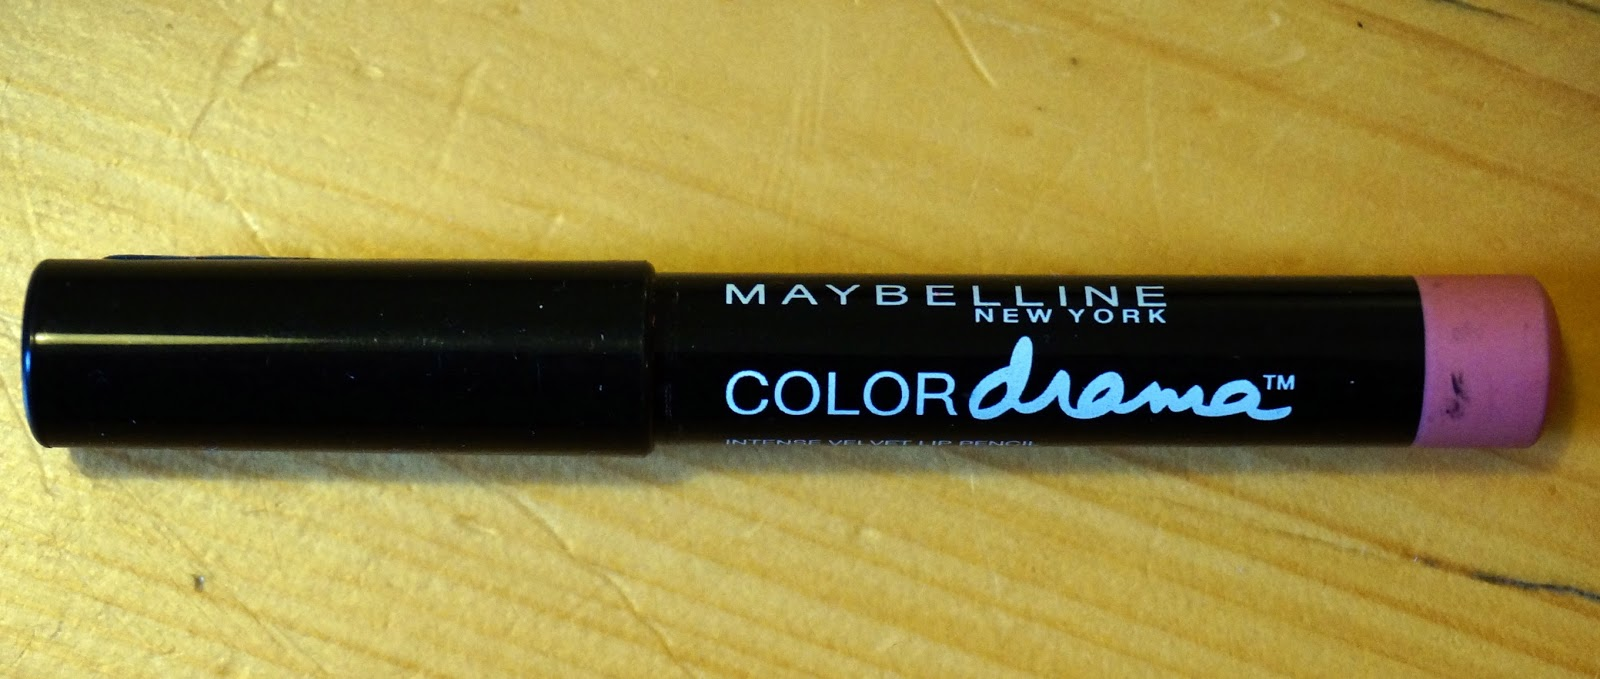 Maybelline Colourdrama in 140 Minimalist